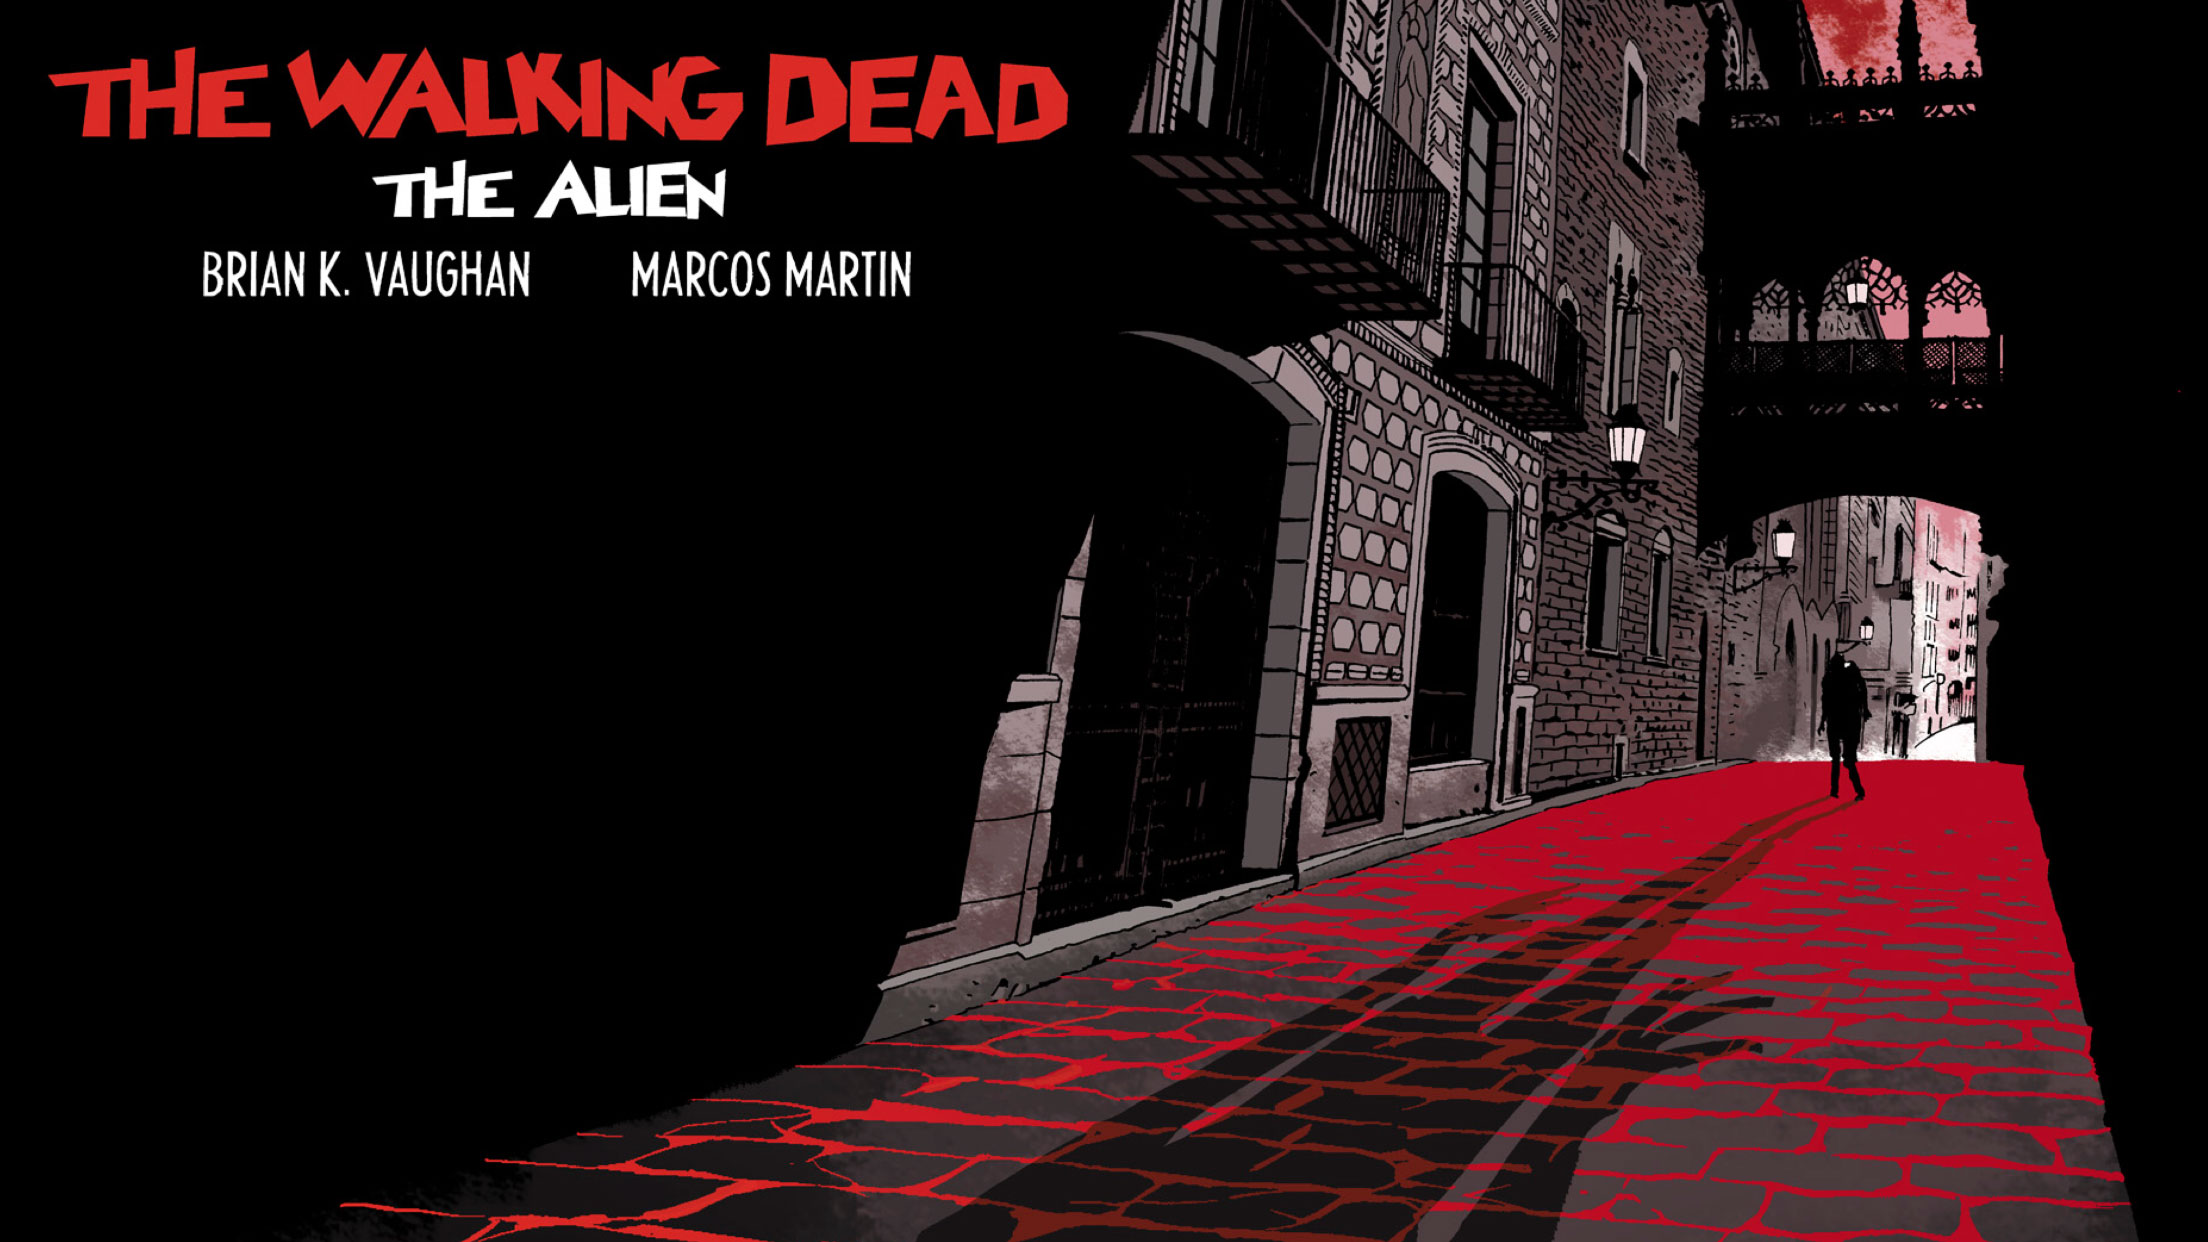 The Walking Dead: The Alien, se desarrolla en Barcelona